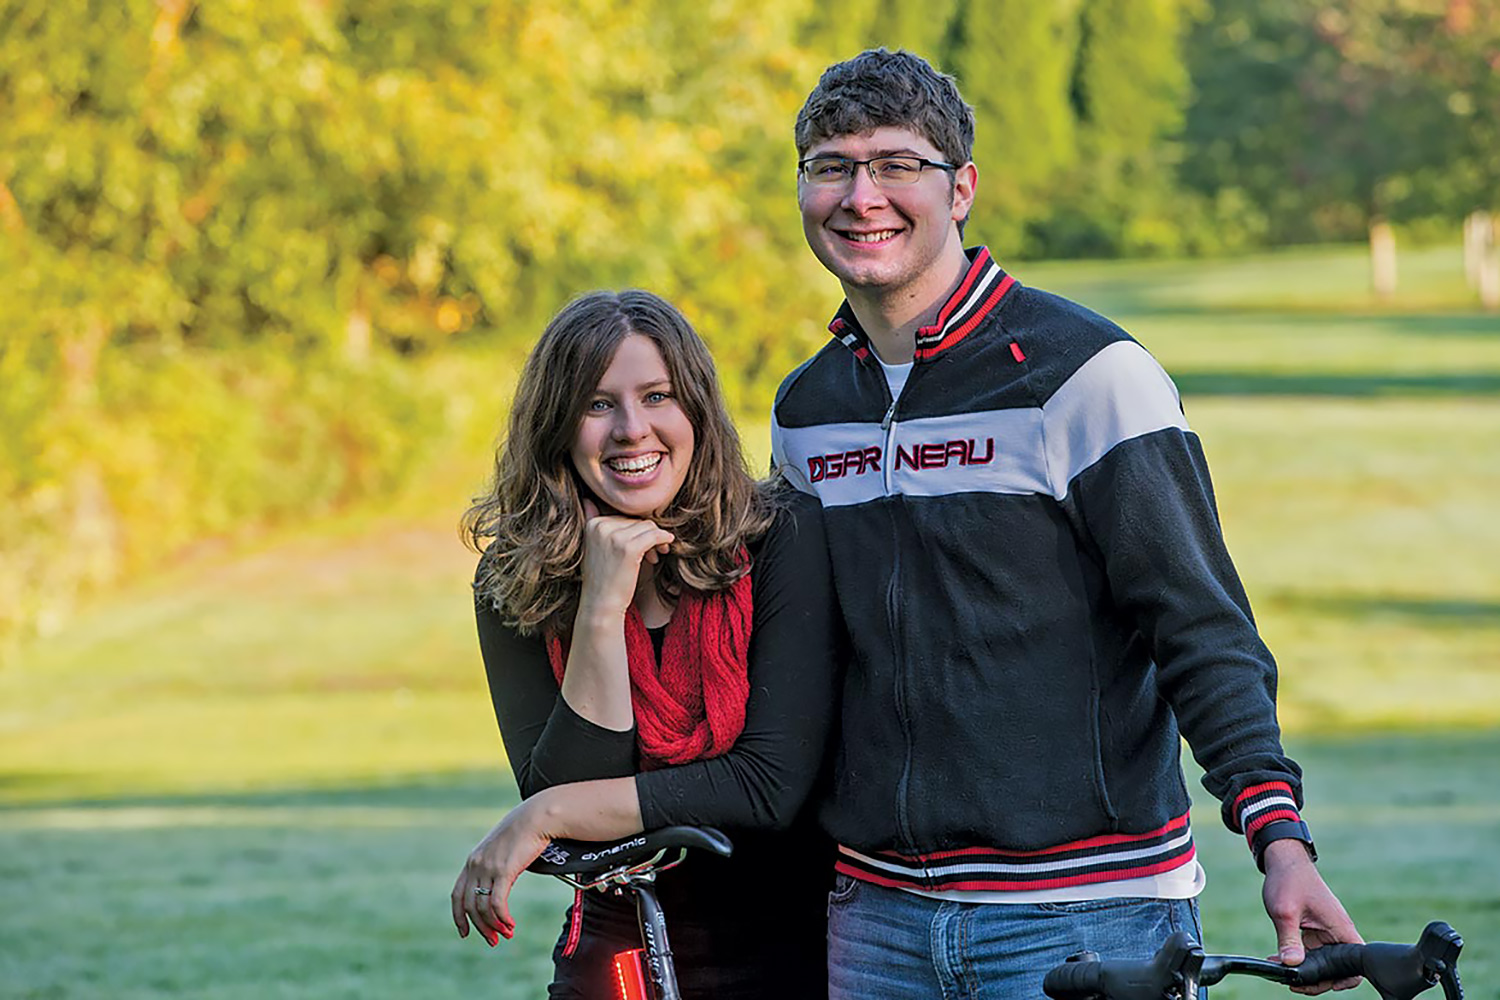 Peter Clyde and Kayla Sanders Clyde with the Orfos Flare bike light